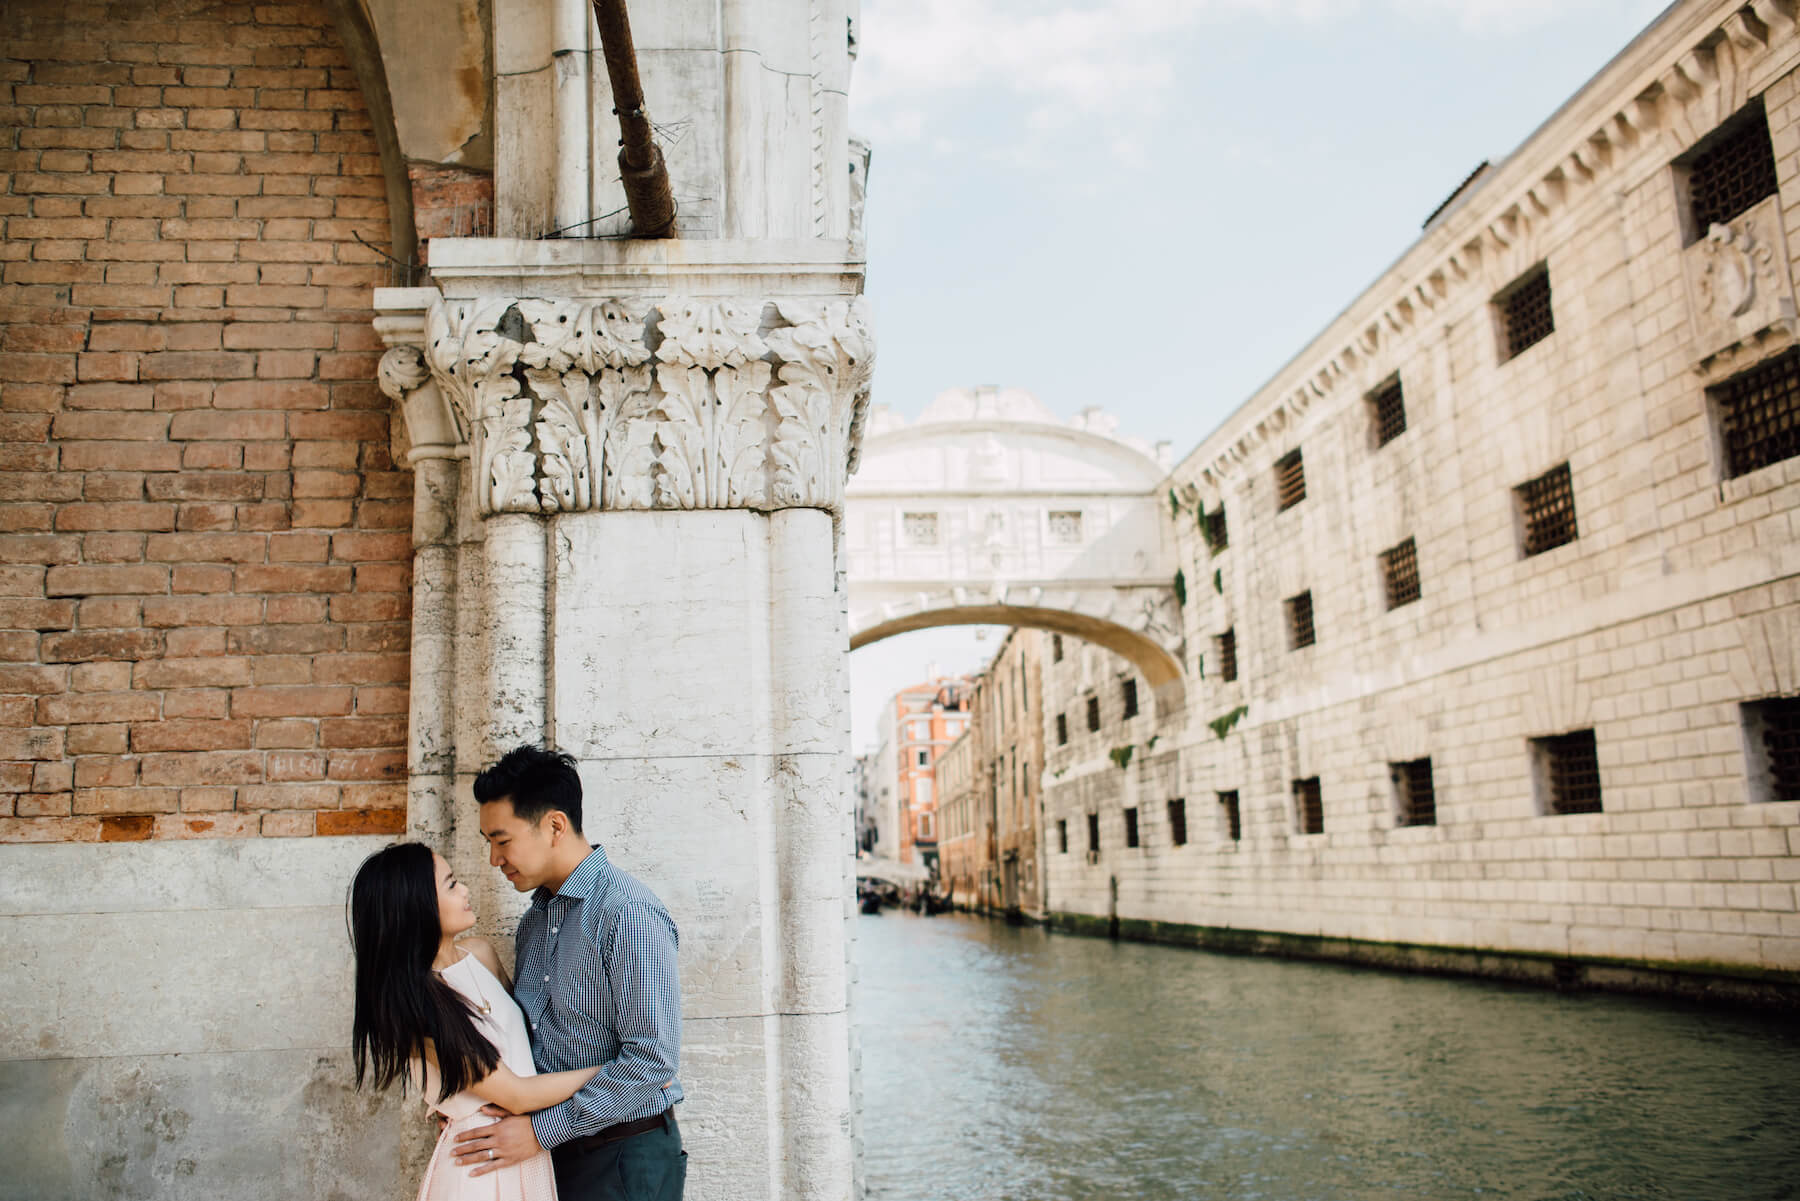 Couple holding each other at the edge of the canal in Venice, Italy